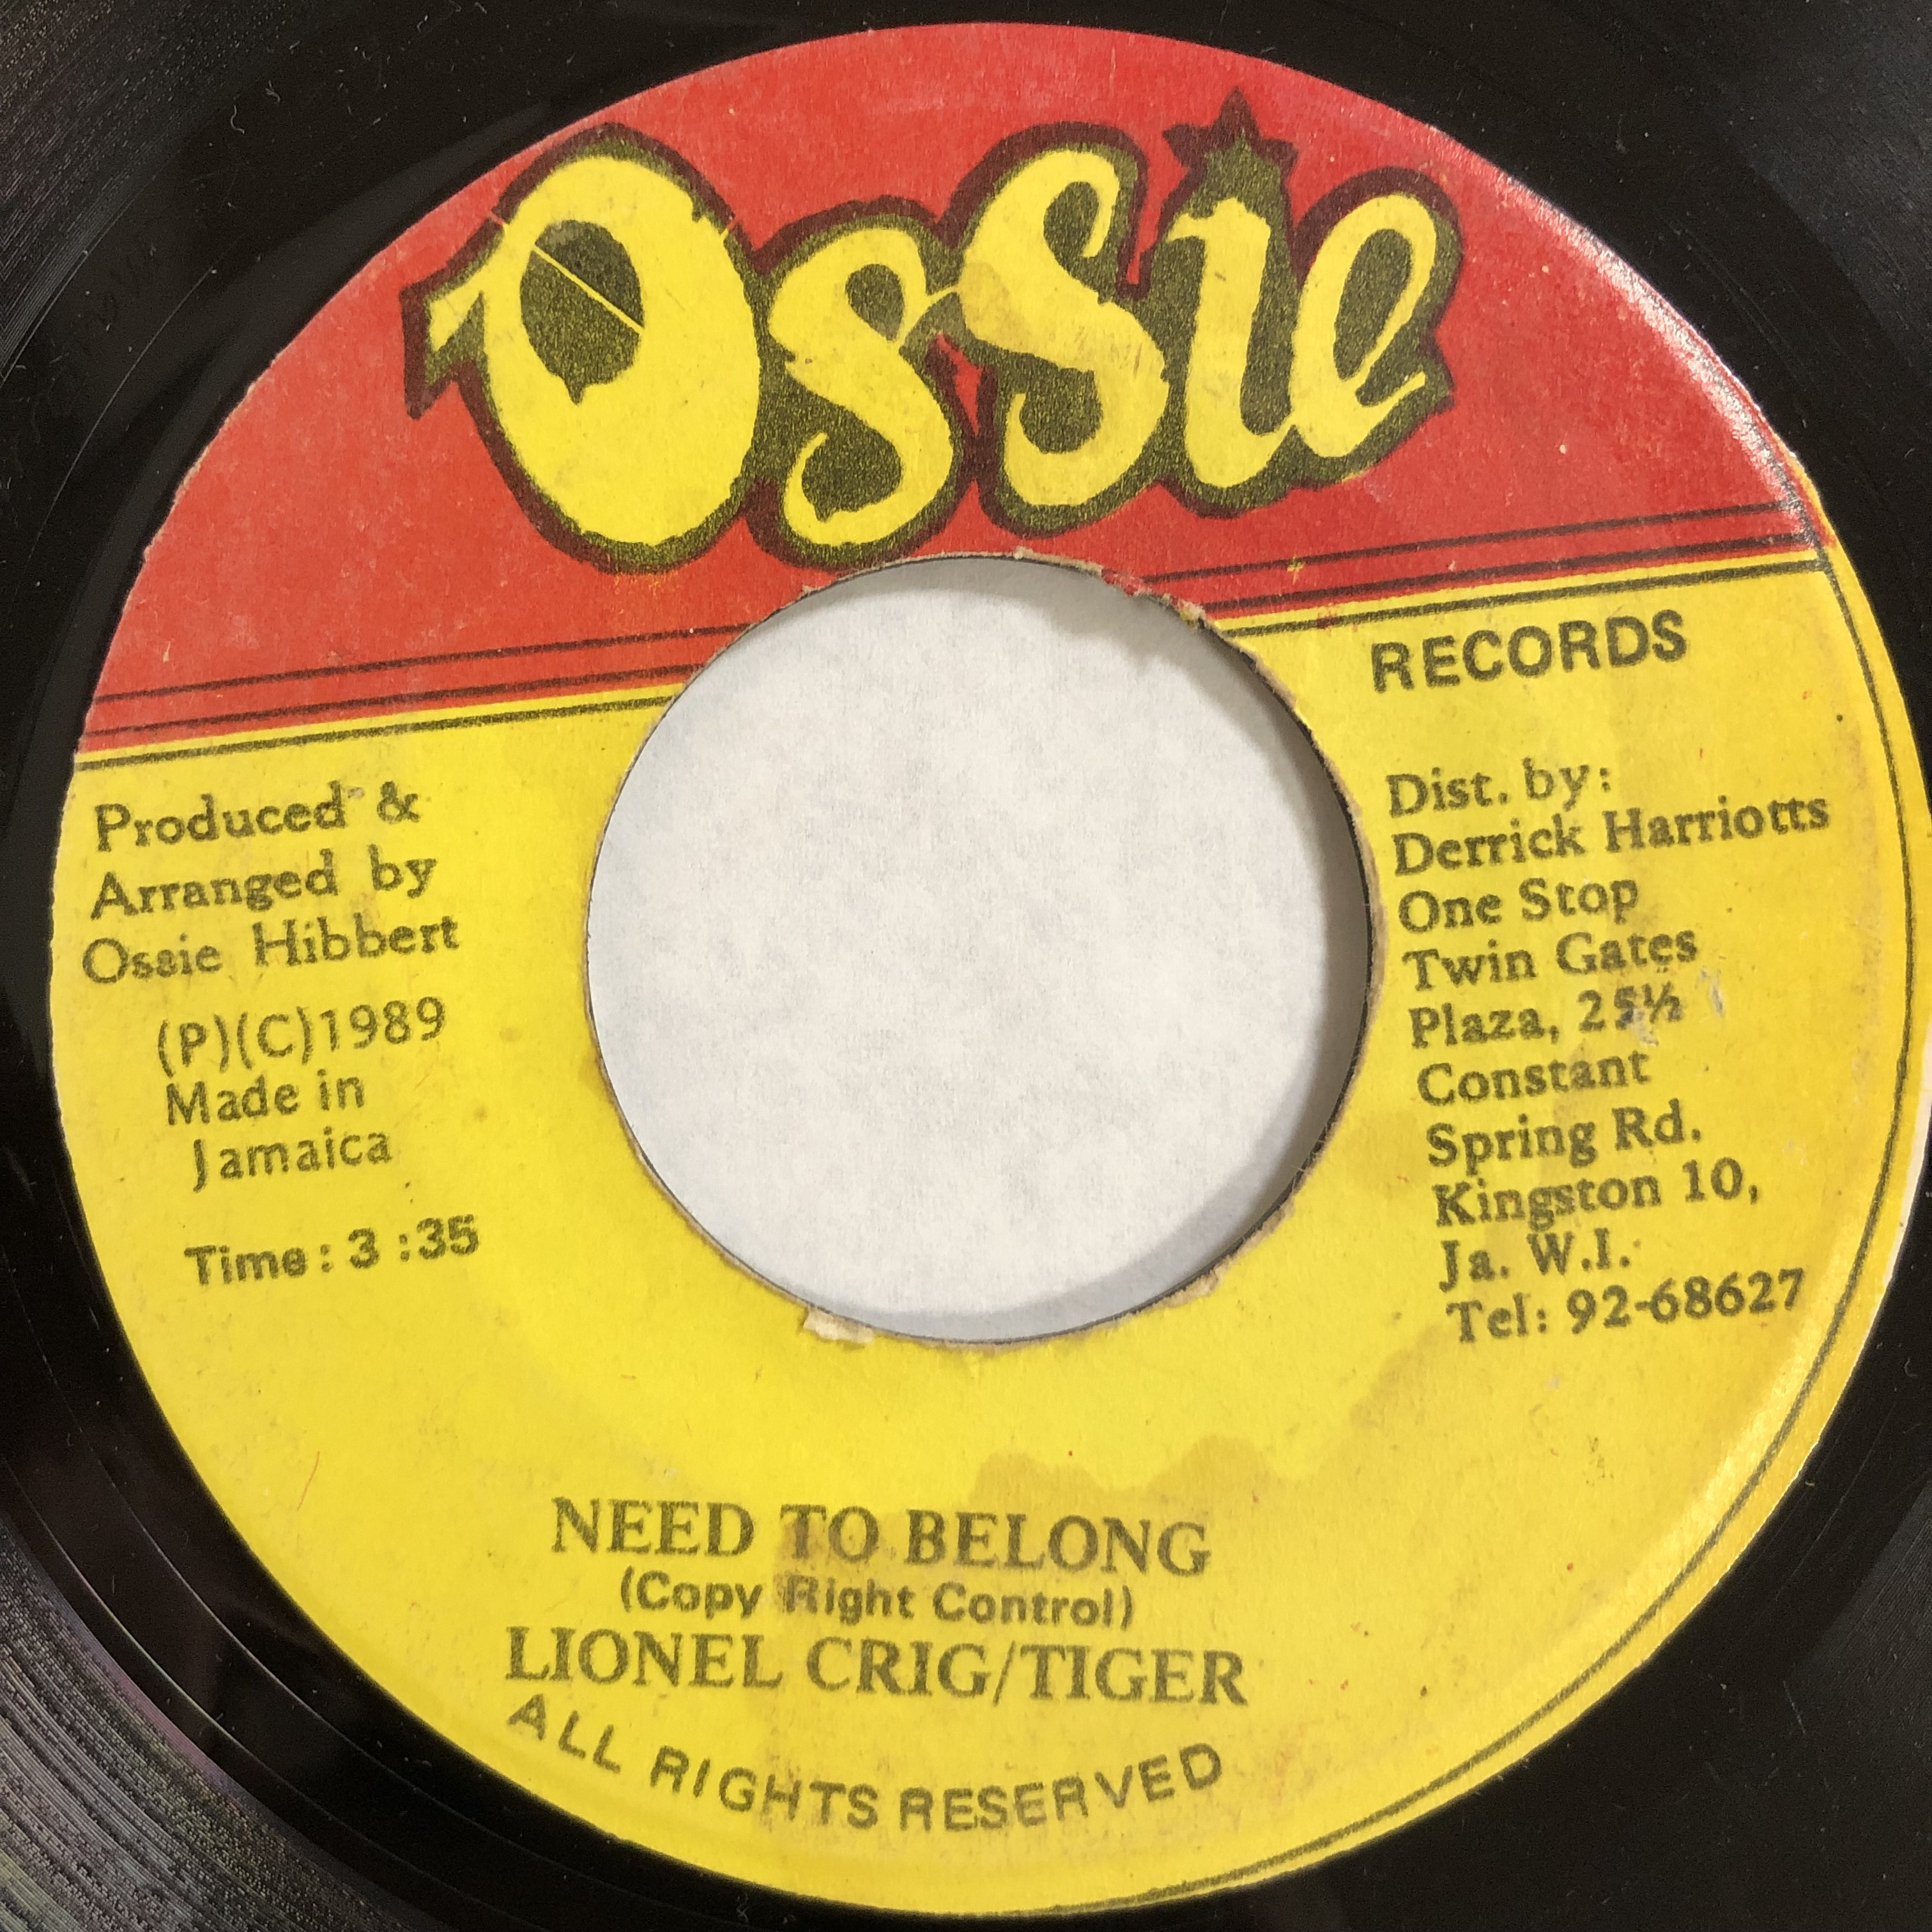 Lionel Craig & Tiger - Need To Belong【7-20129】